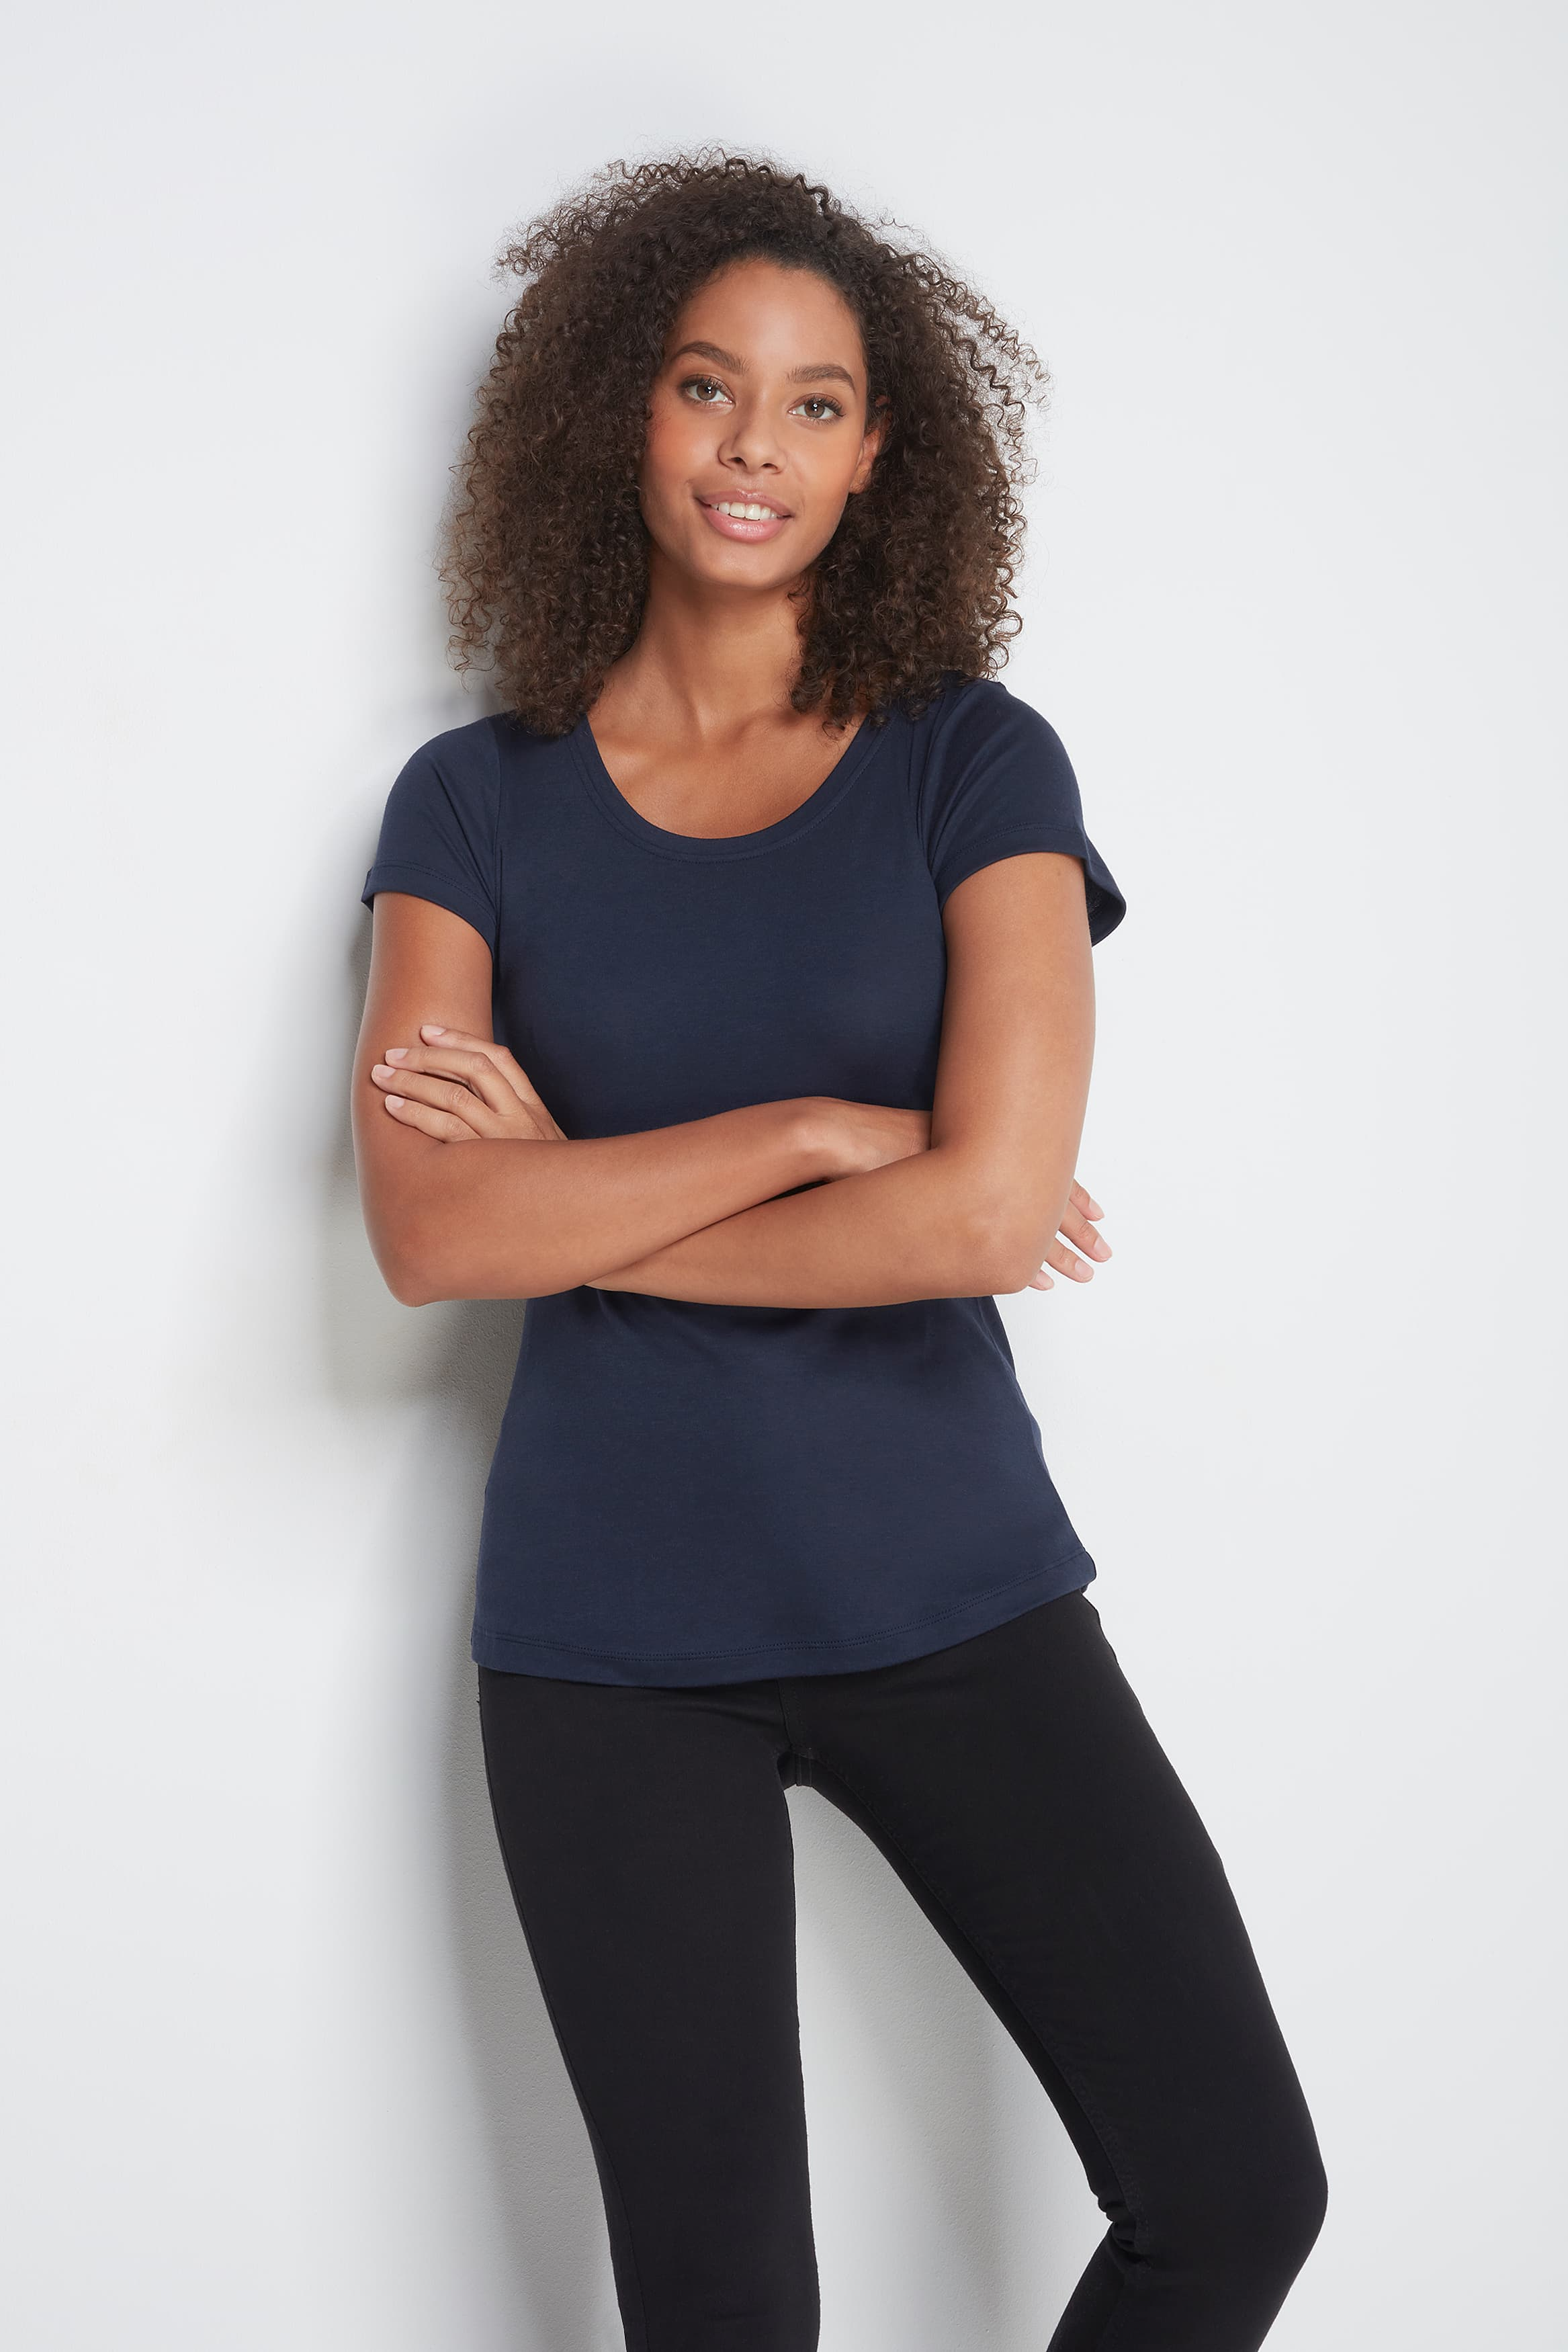 Classic Short Sleeve Scoop Neck T-Shirt - Mid-Weight Flattering Navy T-Shirt - A Comfortable Quality Staple